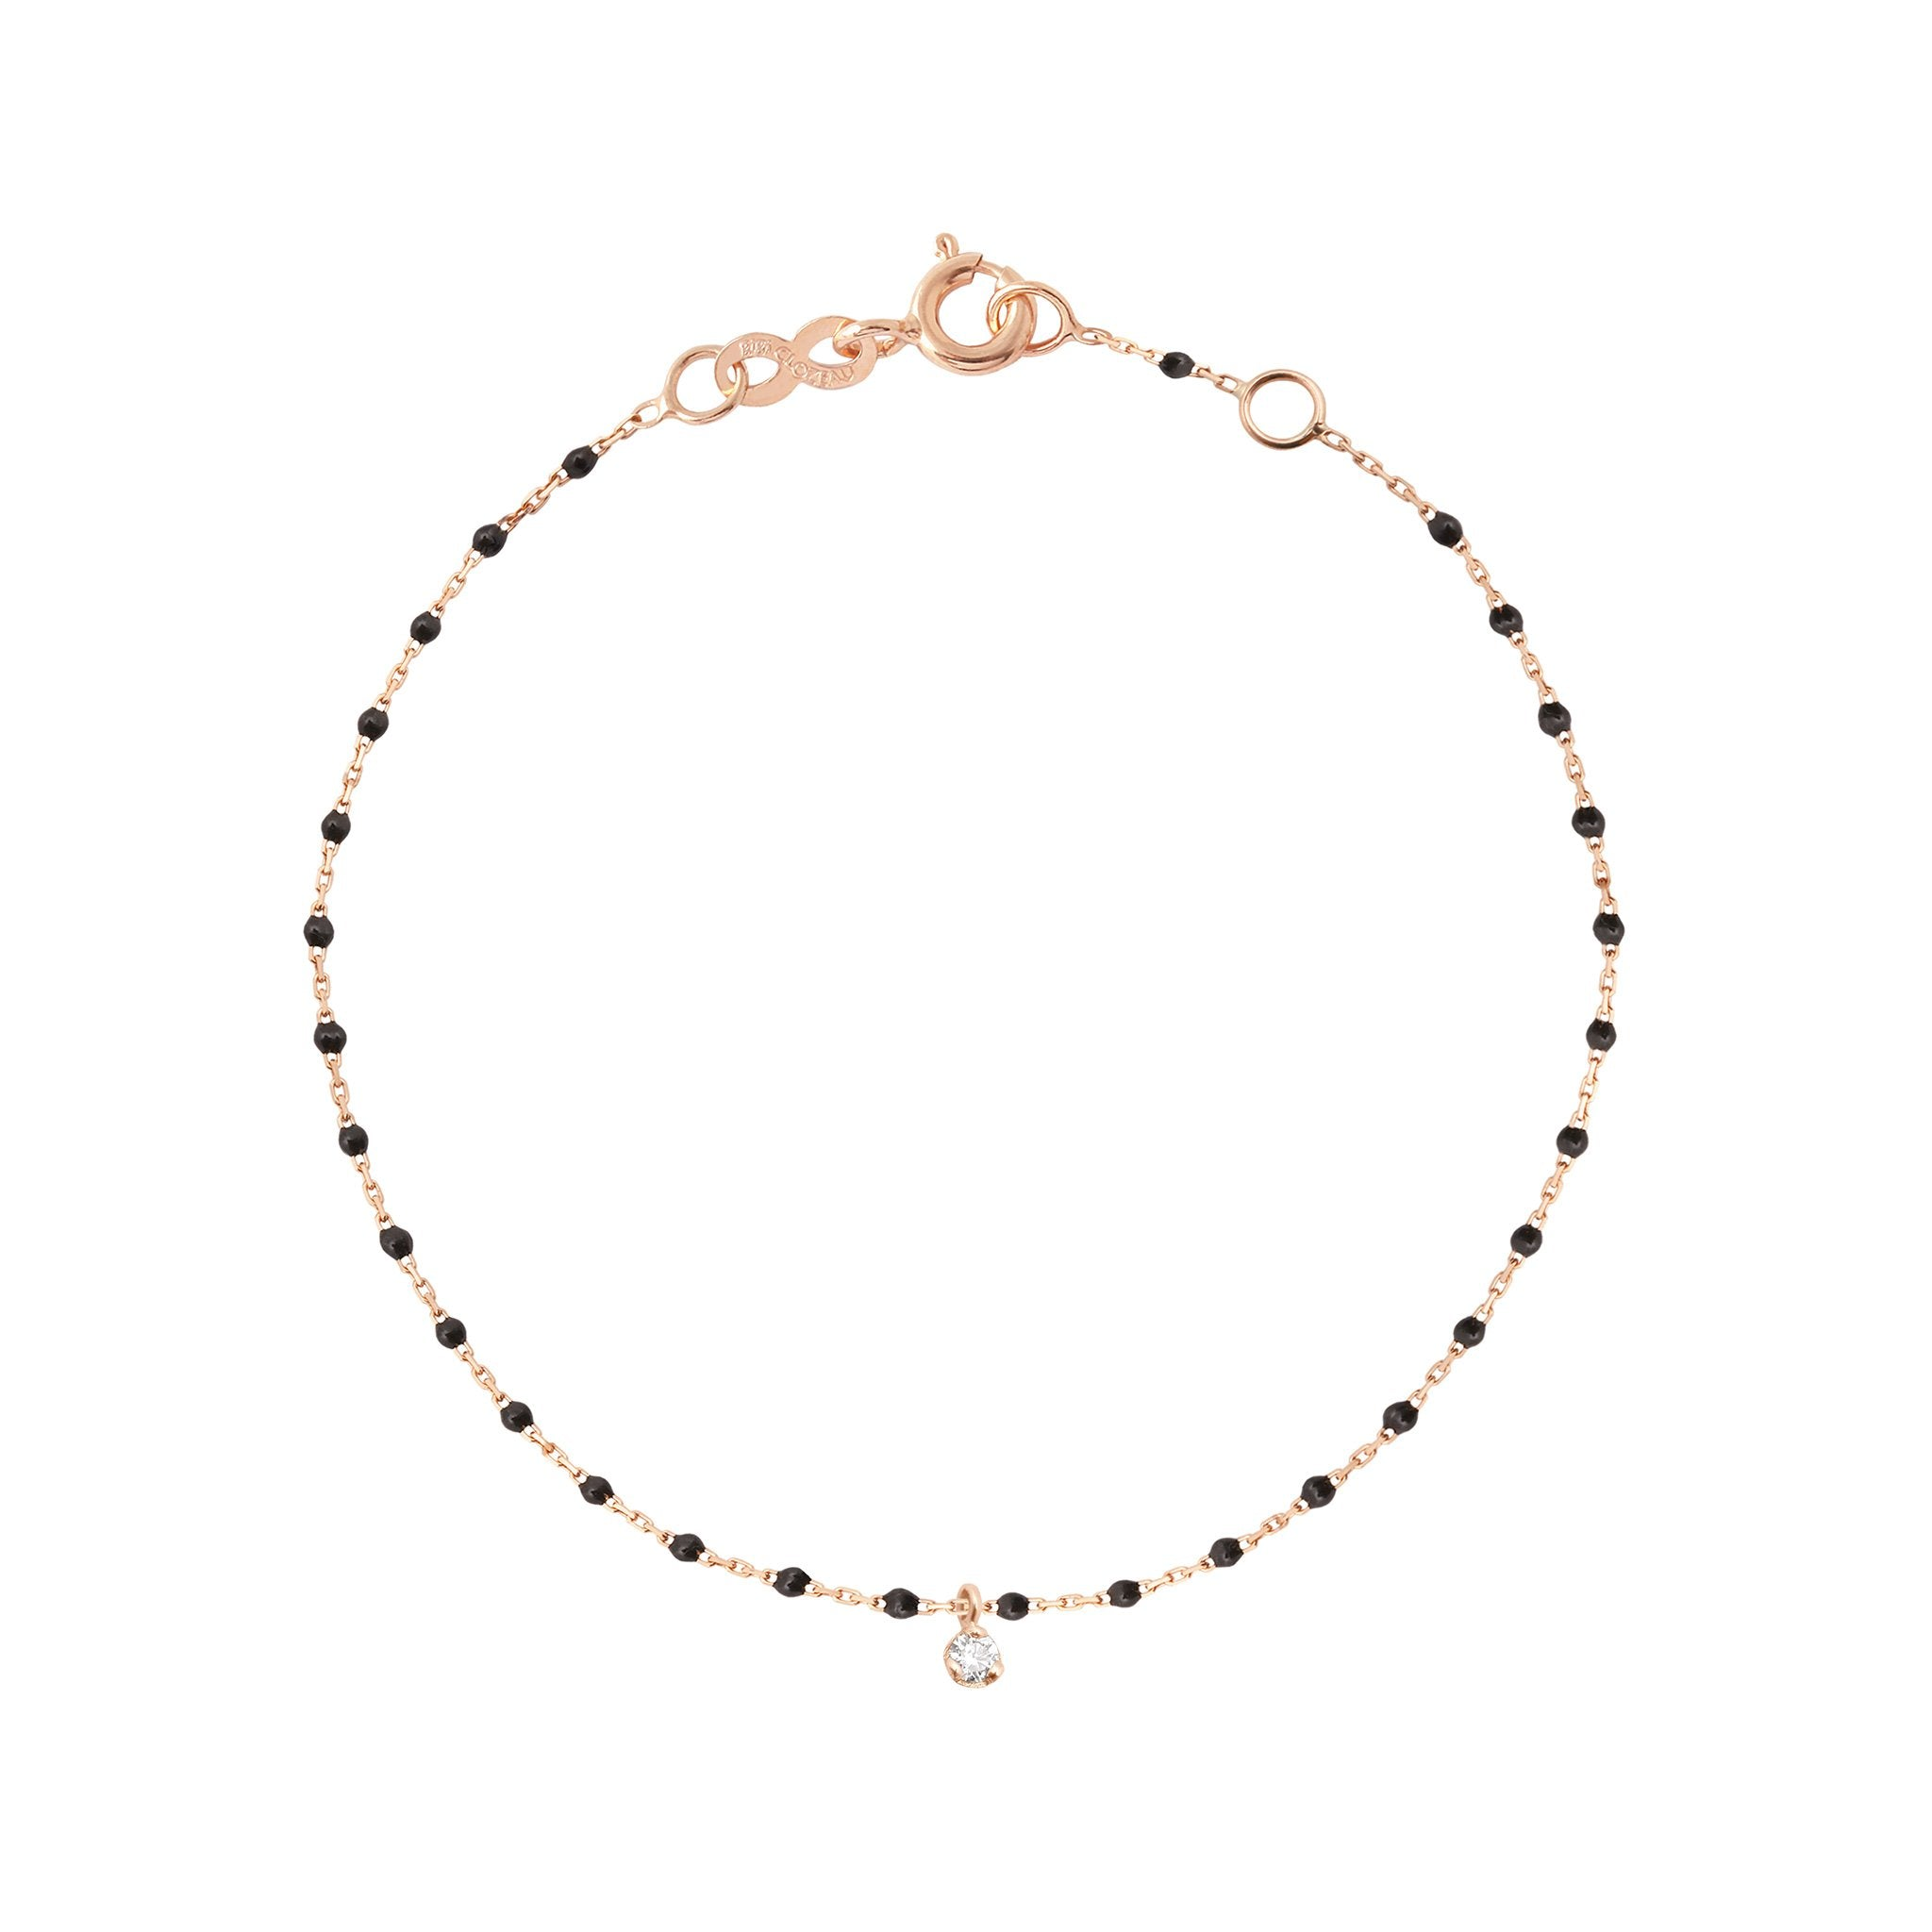 Gigi Clozeau - Mini Gigi Black bracelet, Rose Gold 1 Diamond, 6.7